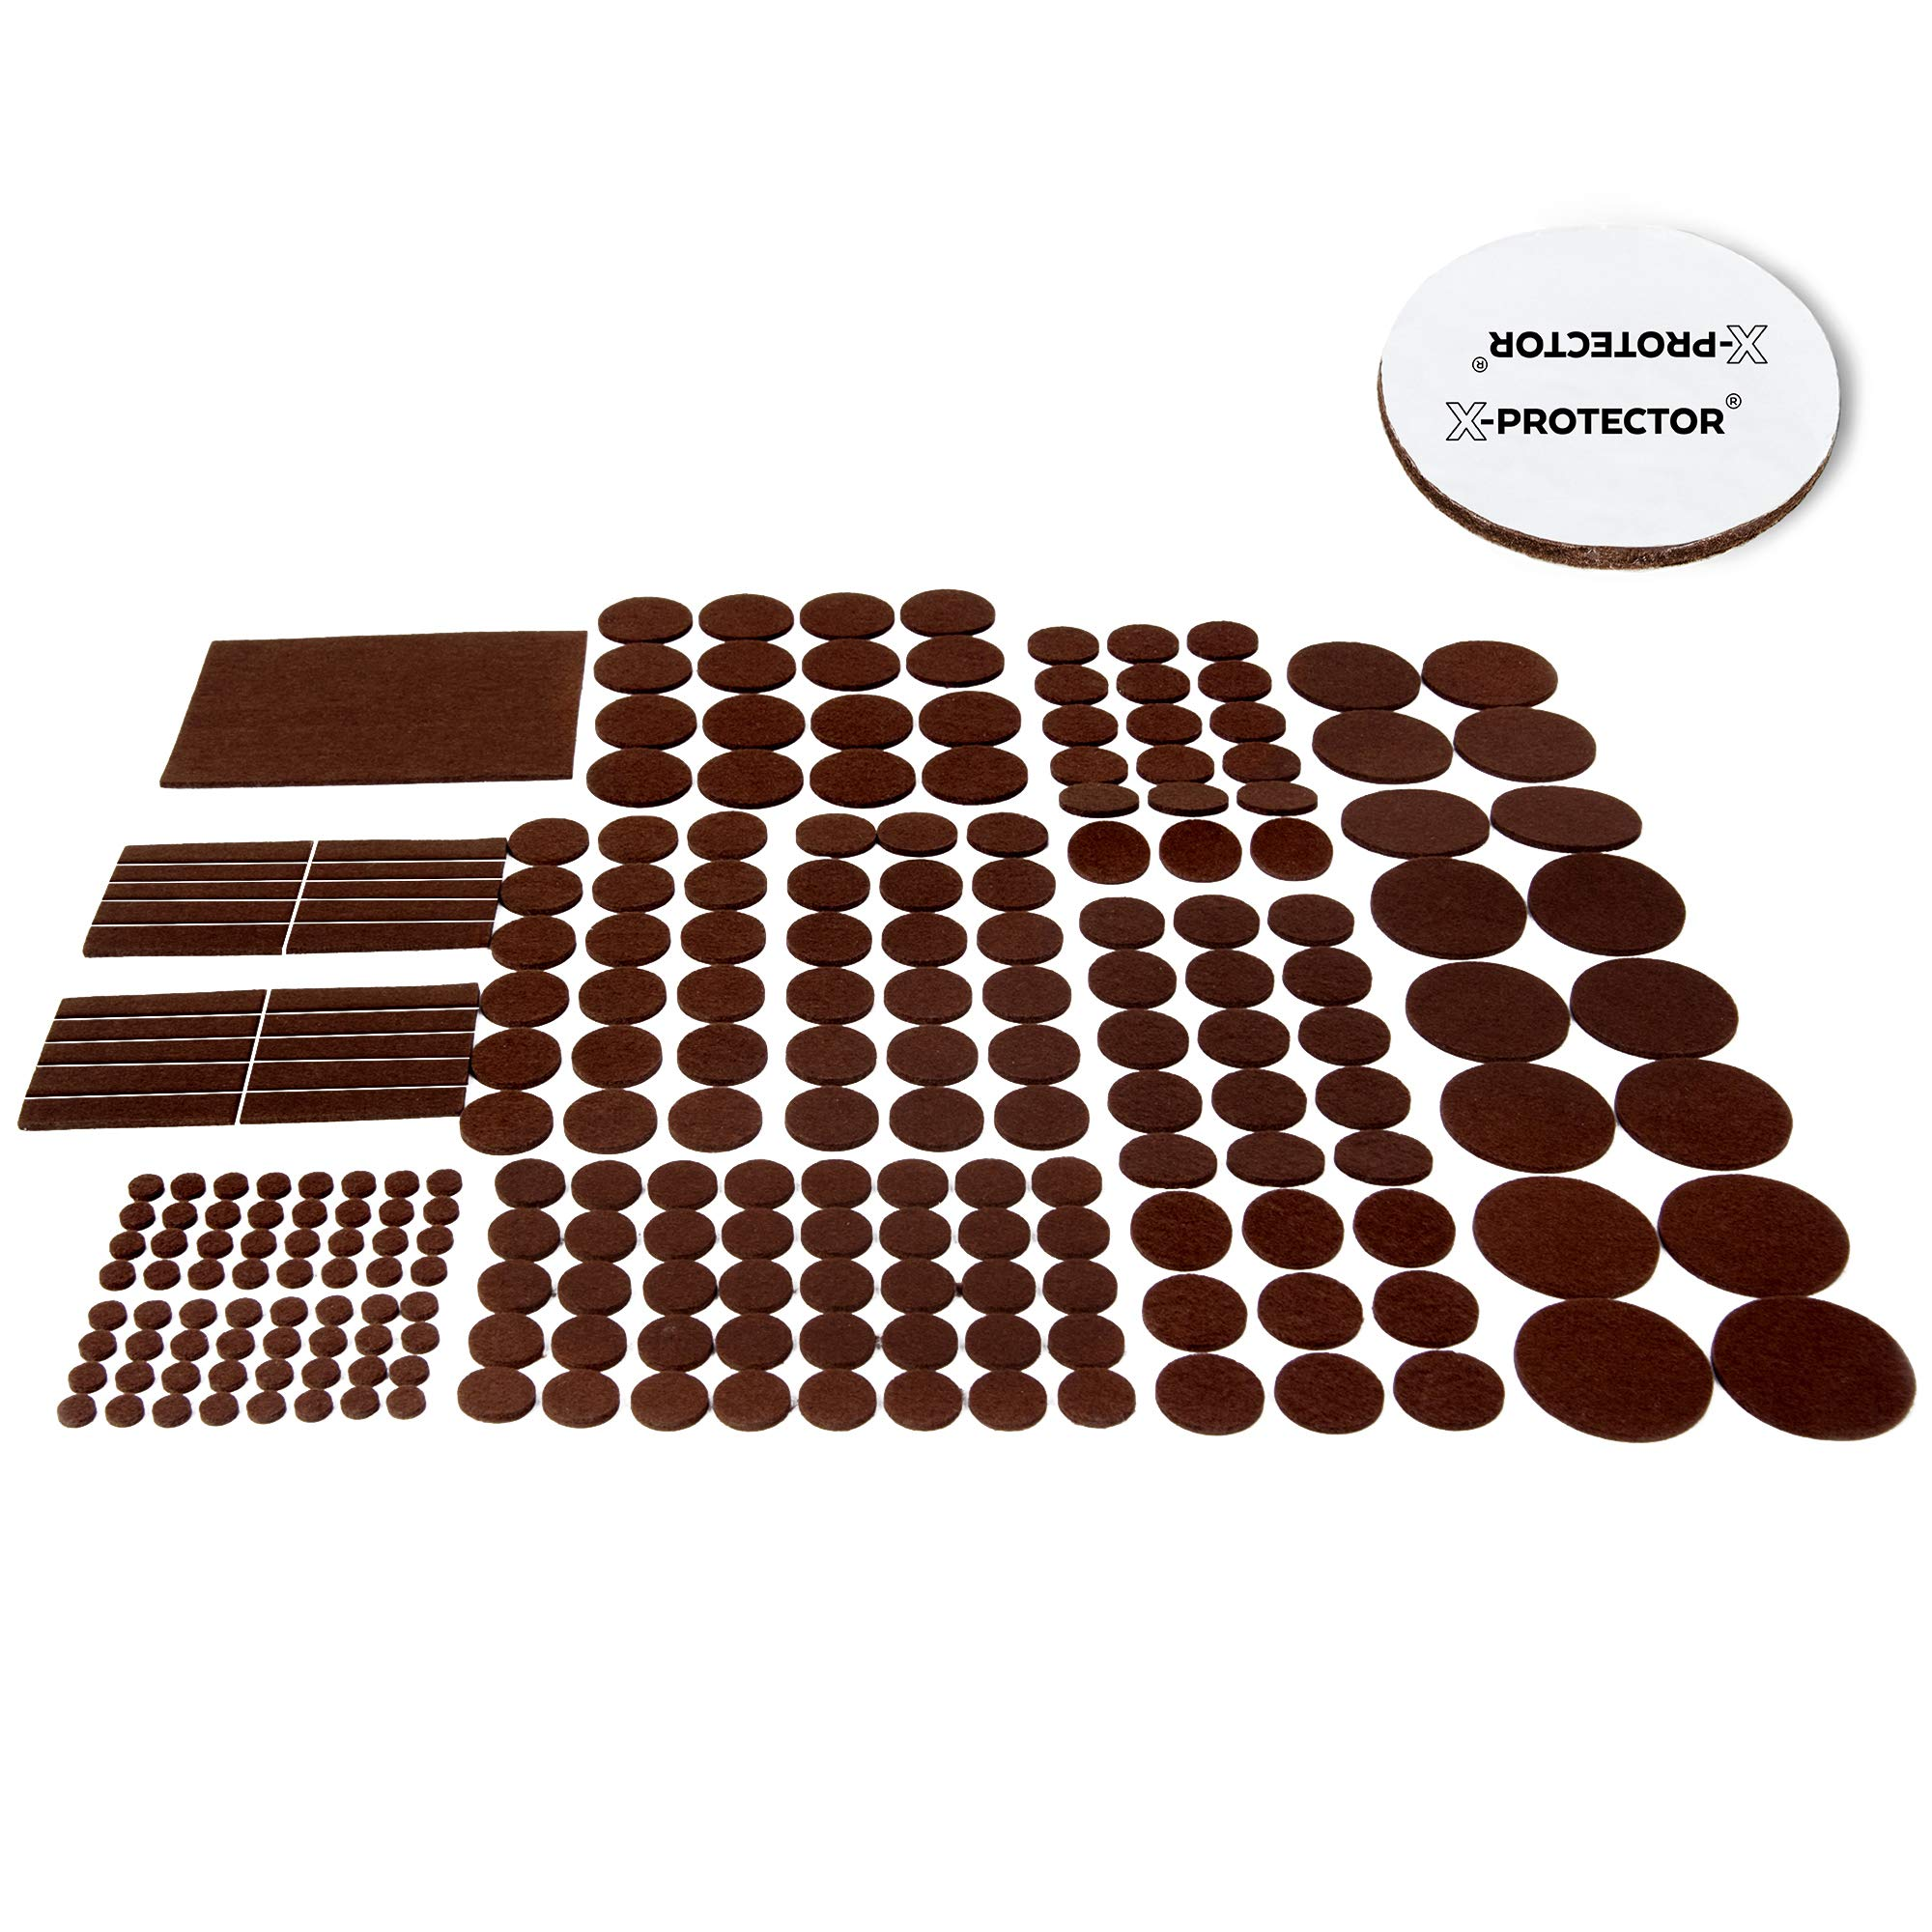 X-PROTECTOR Premium GIANT Pack Furniture Pads 235 piece! GREAT QUANTITY of Felt Pads Furniture Feet with MANY BIG SIZES – Your Best Wood Floor Protectors. Protect Your Hardwood & Laminate Flooring!